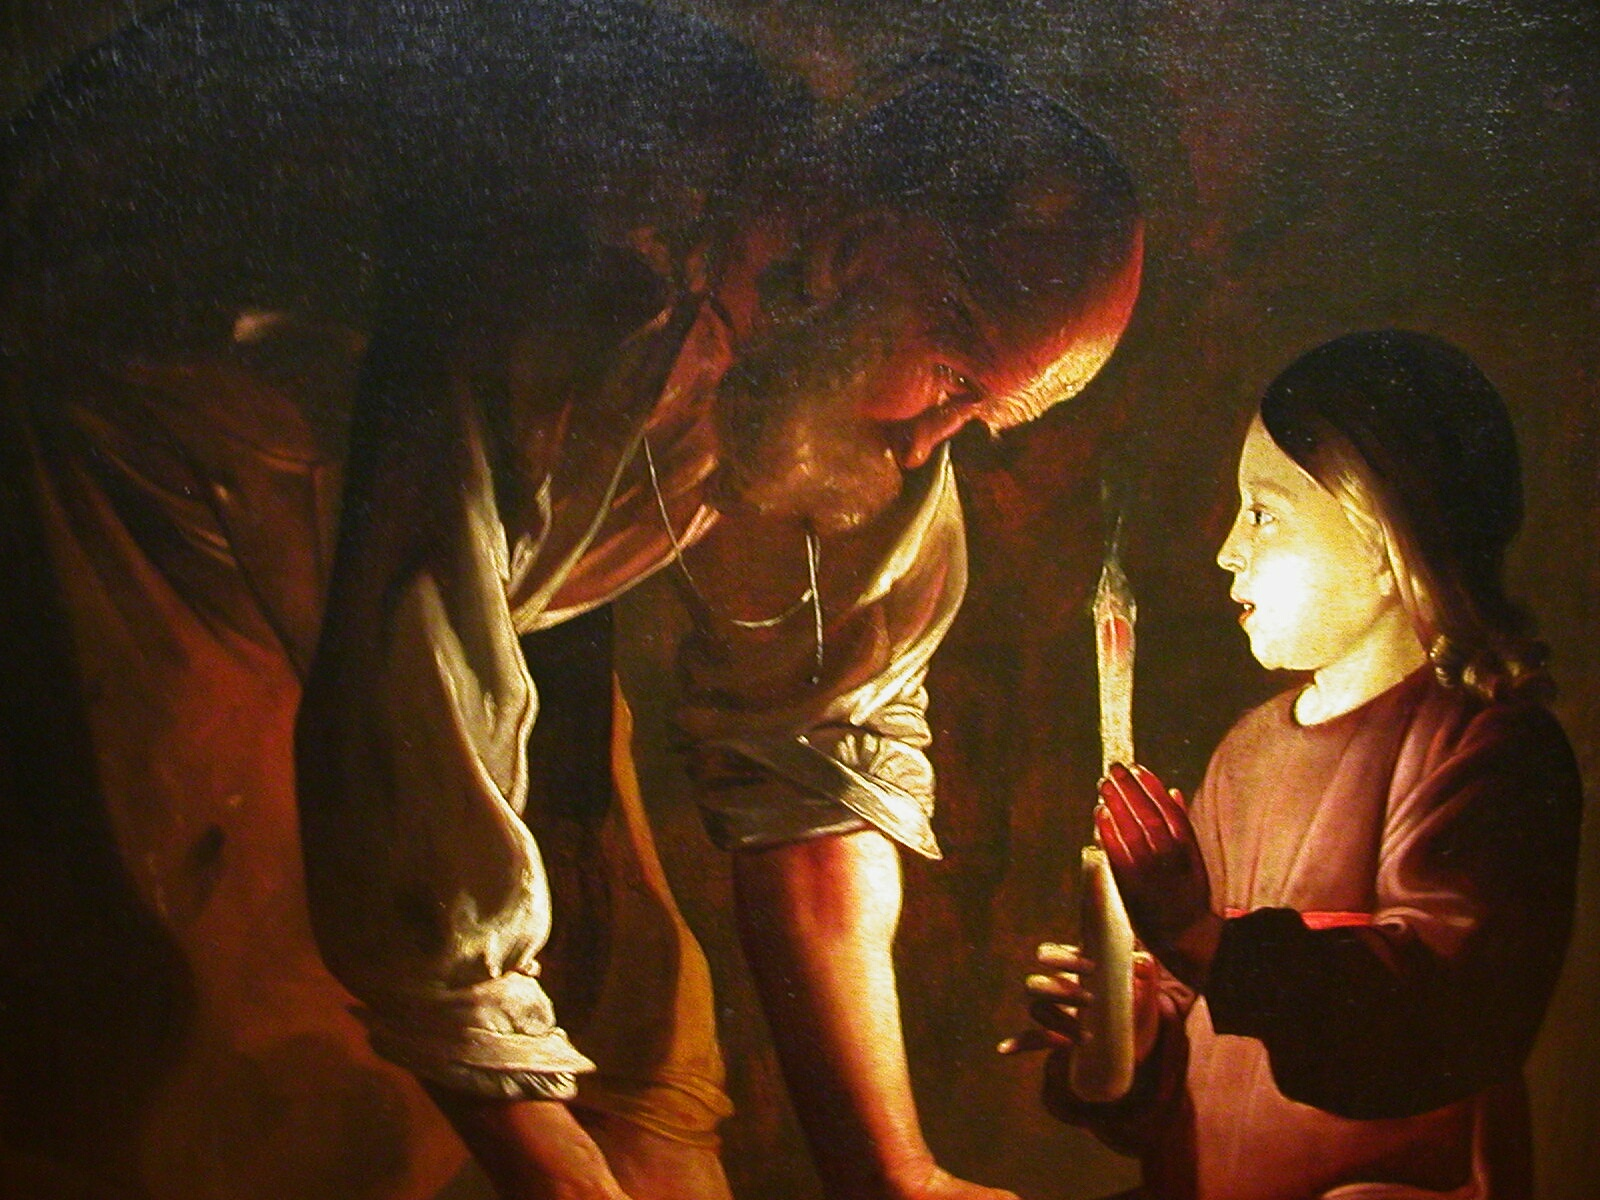 st joseph about a saint who Saint joseph, husband to mary and foster father to jesus, is the patron   perhaps especially for catholic husbands and fathers, st joseph.